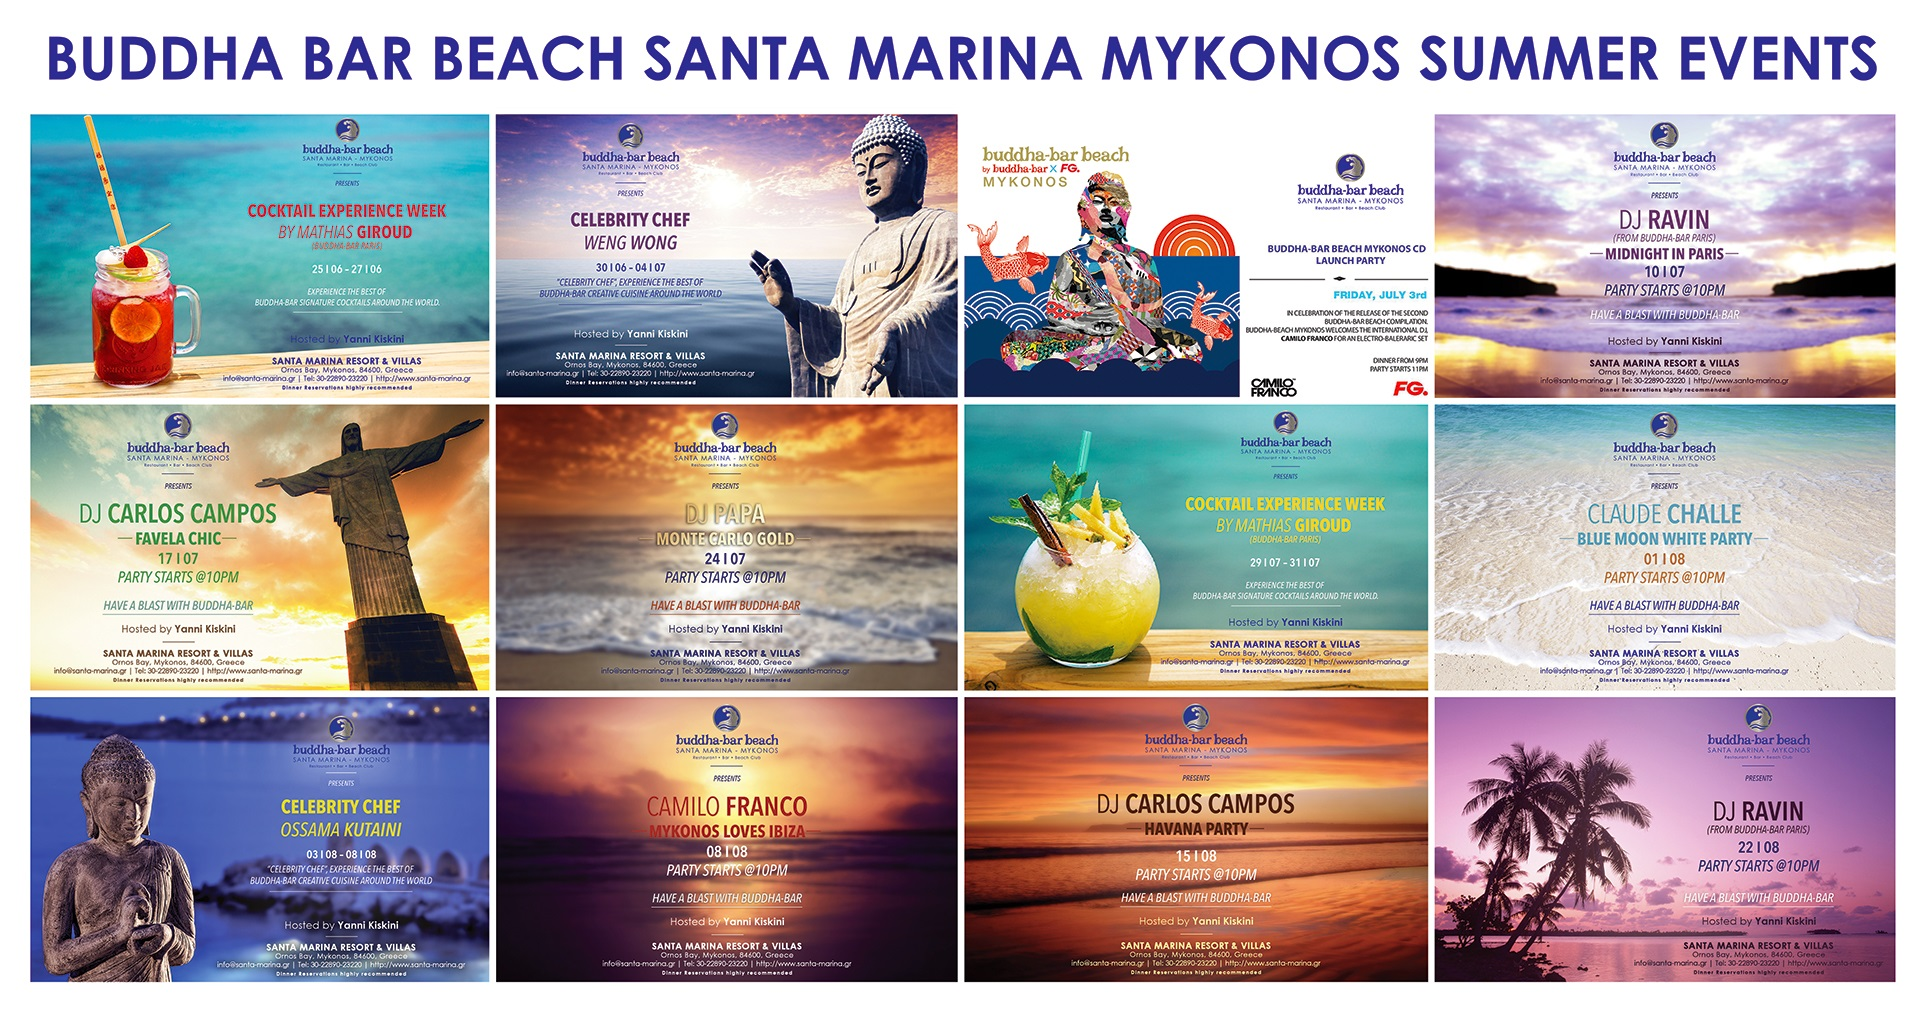 Buddha Bar, Mykonos Summer Events 2015!